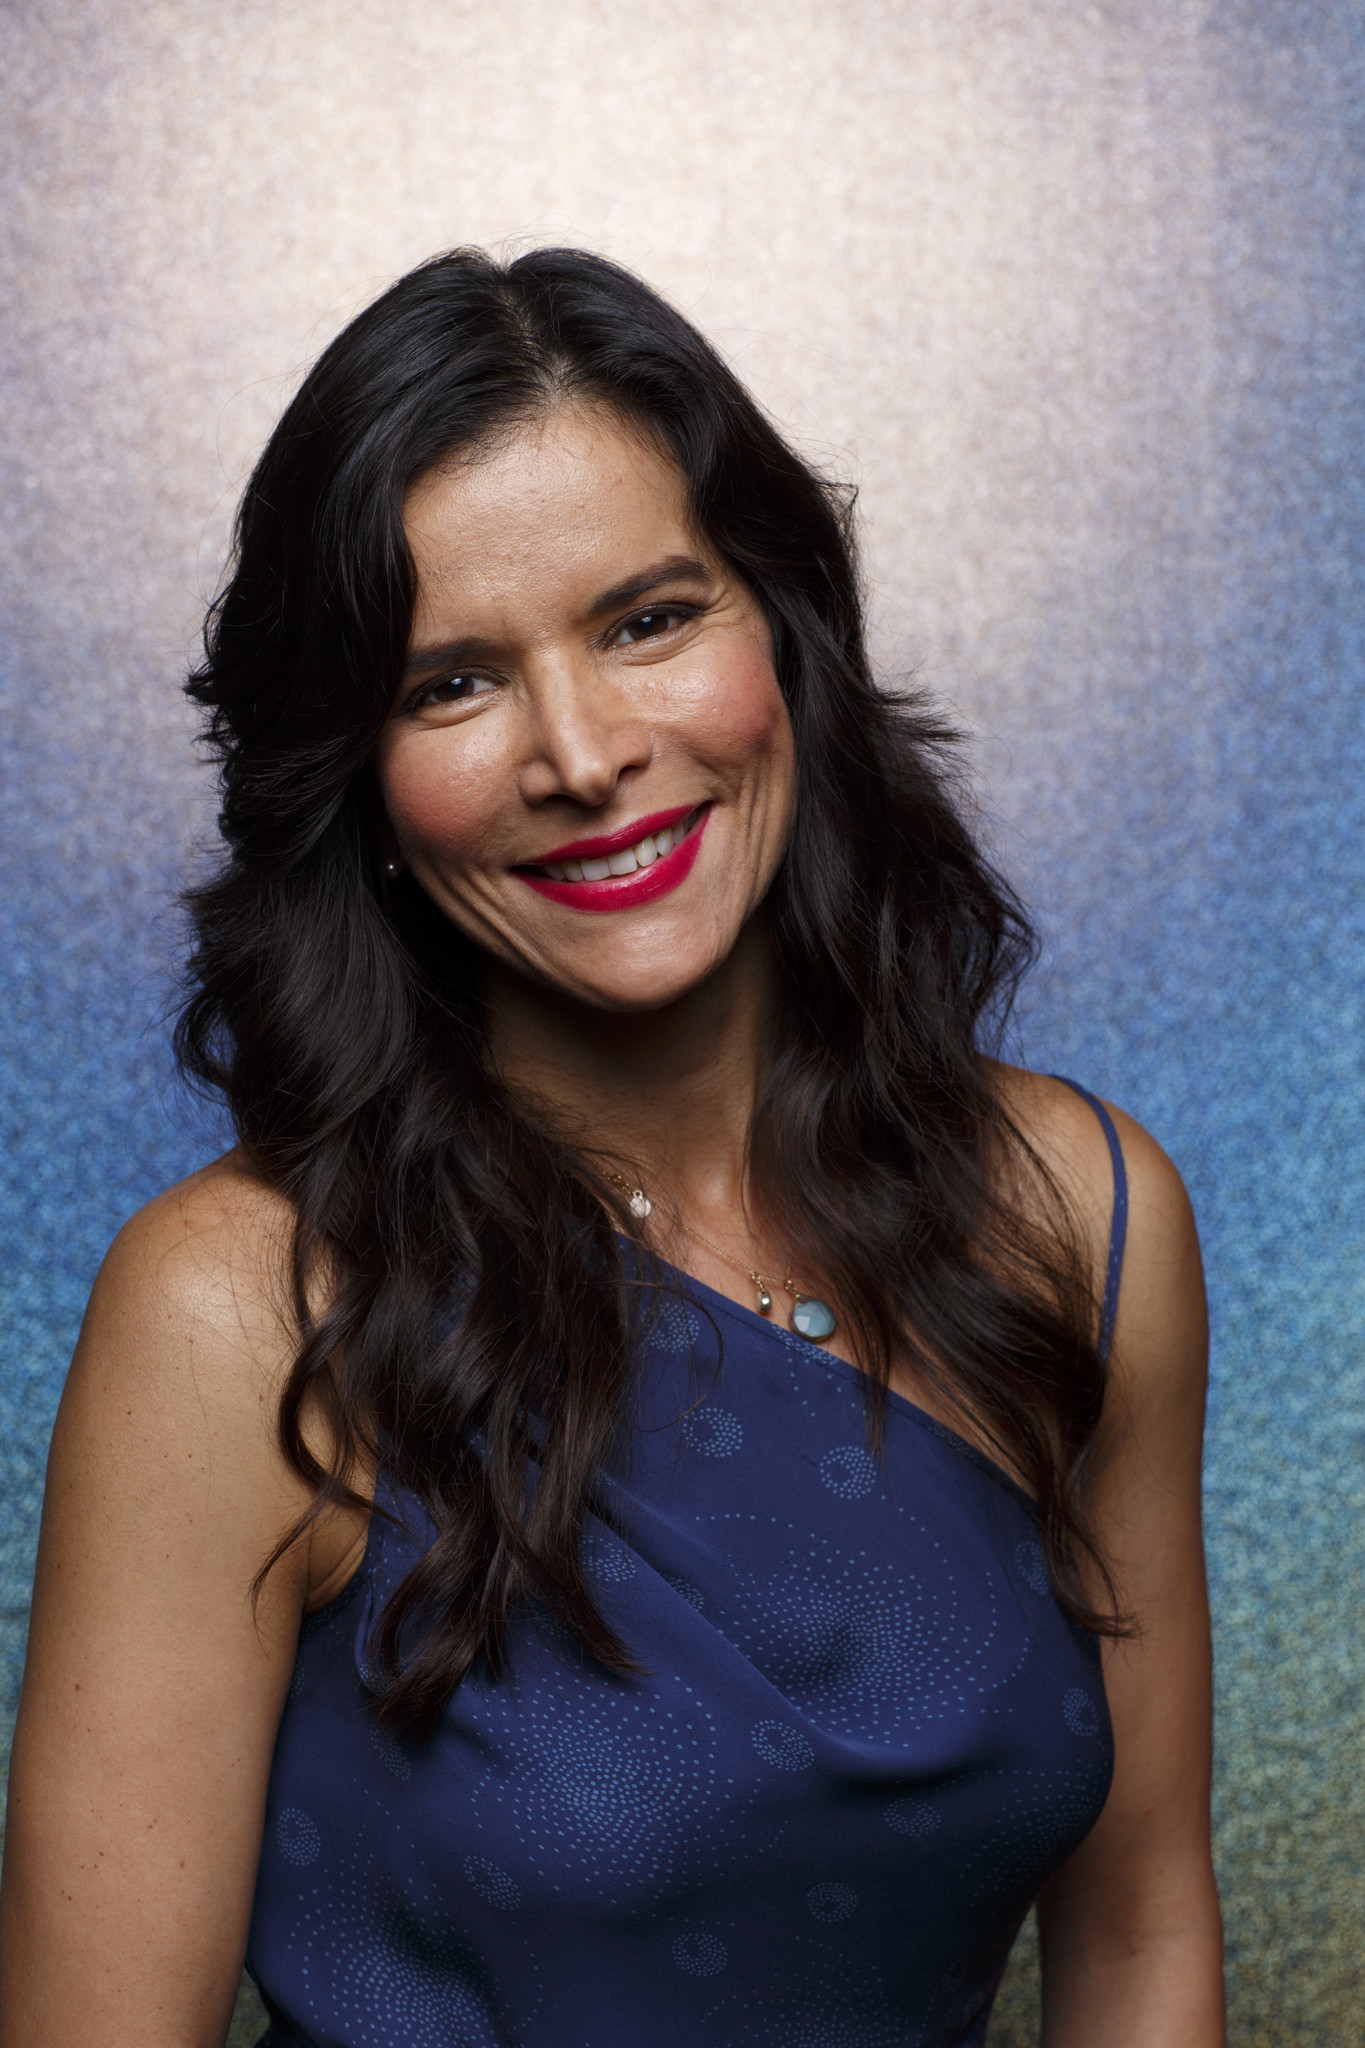 """SAN DIEGO, CALIF. — JULY 19, 2018-- Patricia Velasquez from the film """"The Curse of La LLorona,"""" pho"""